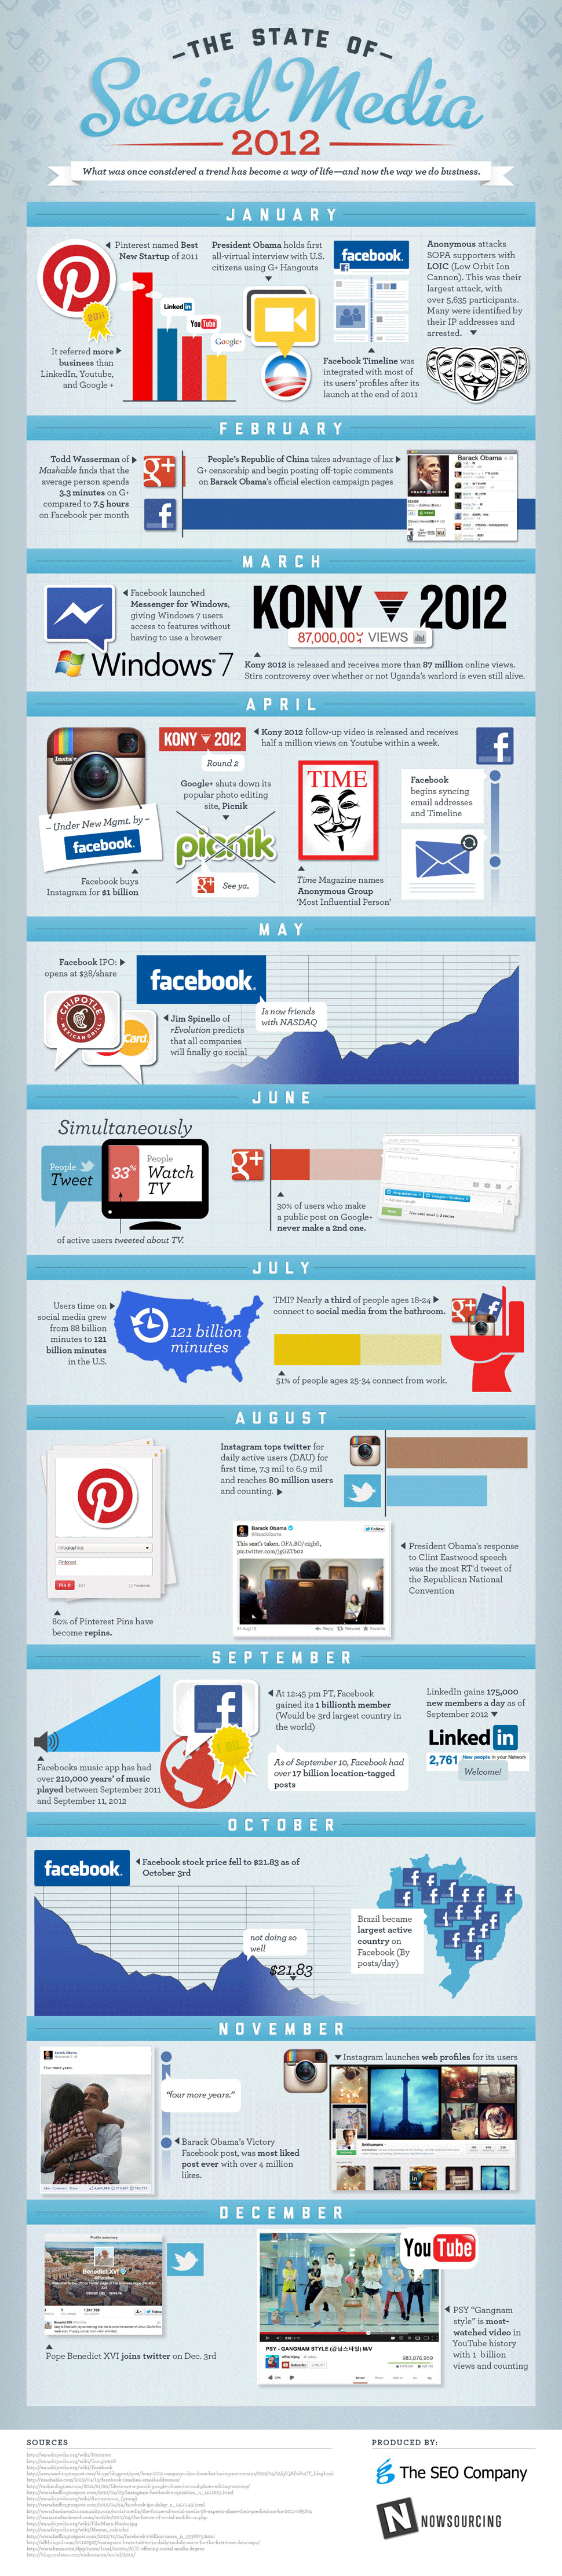 5 Social Media Marketing Strategy Lessons From 2012 image stateofsocial2012